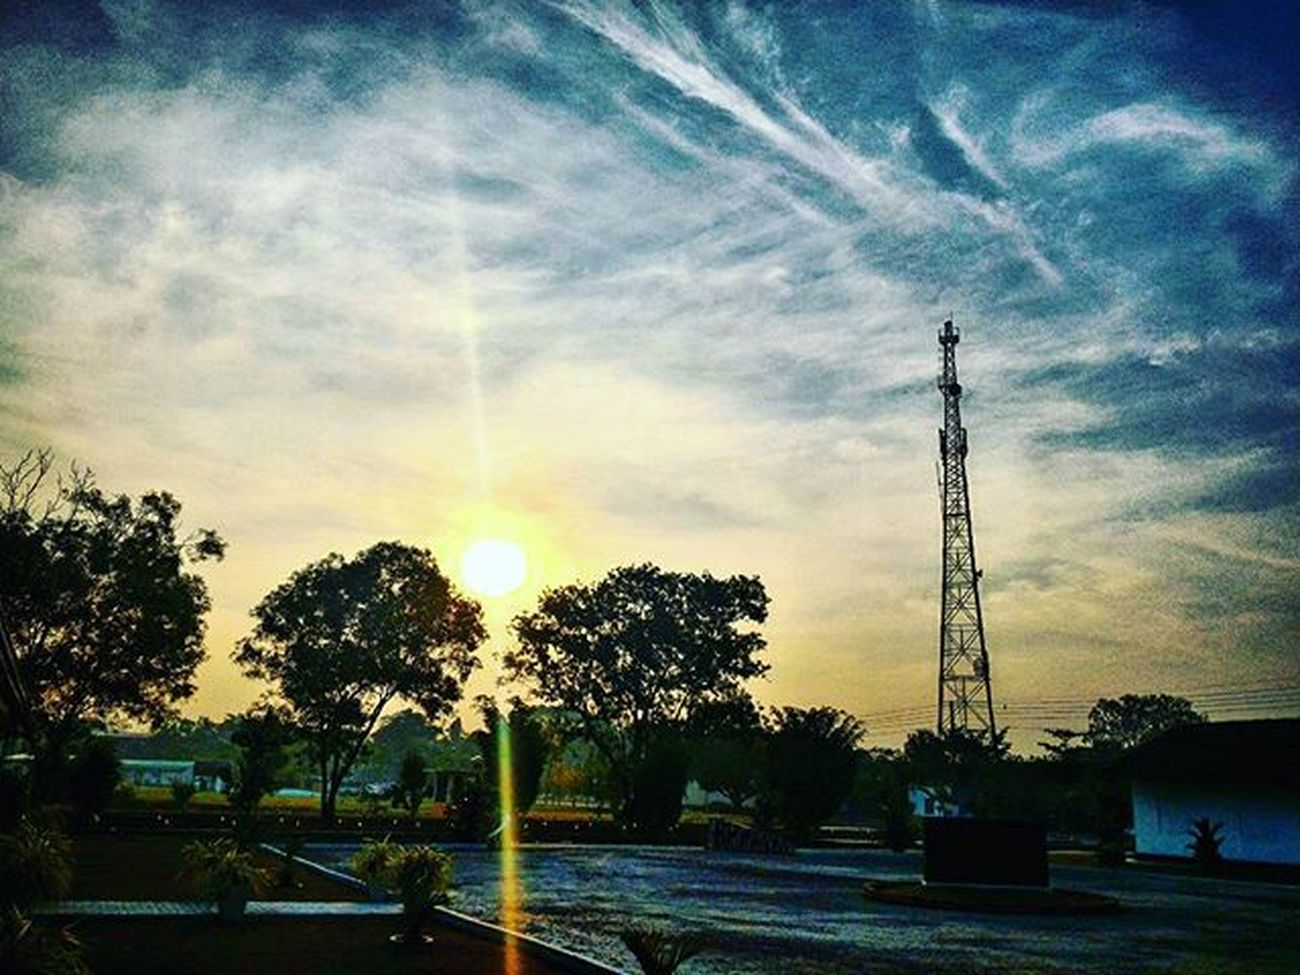 🌄 Goodmorninginsta Beautifulsky Beautifulnature Sunrise Httc SLAF Tower Clearsky Sunrays Zenfone2camera